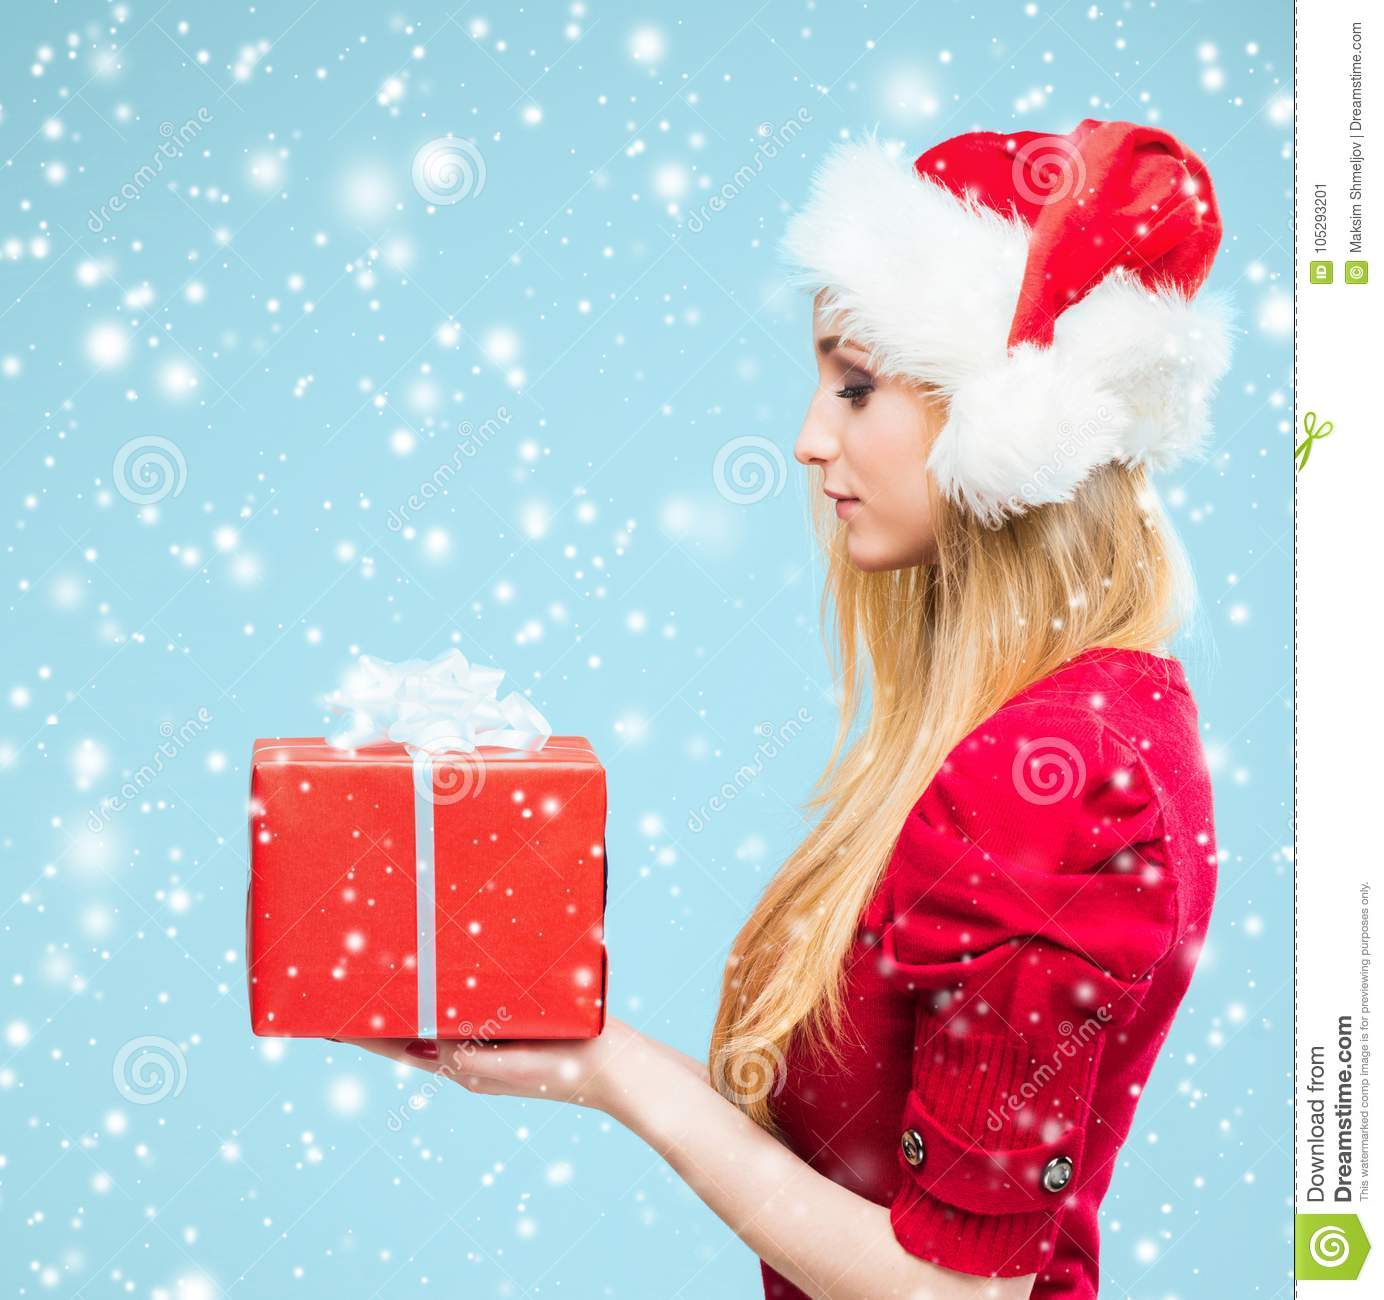 Christmas Background Images Portrait.Portrait Of Attractive Blond Woman Over Christmas Background